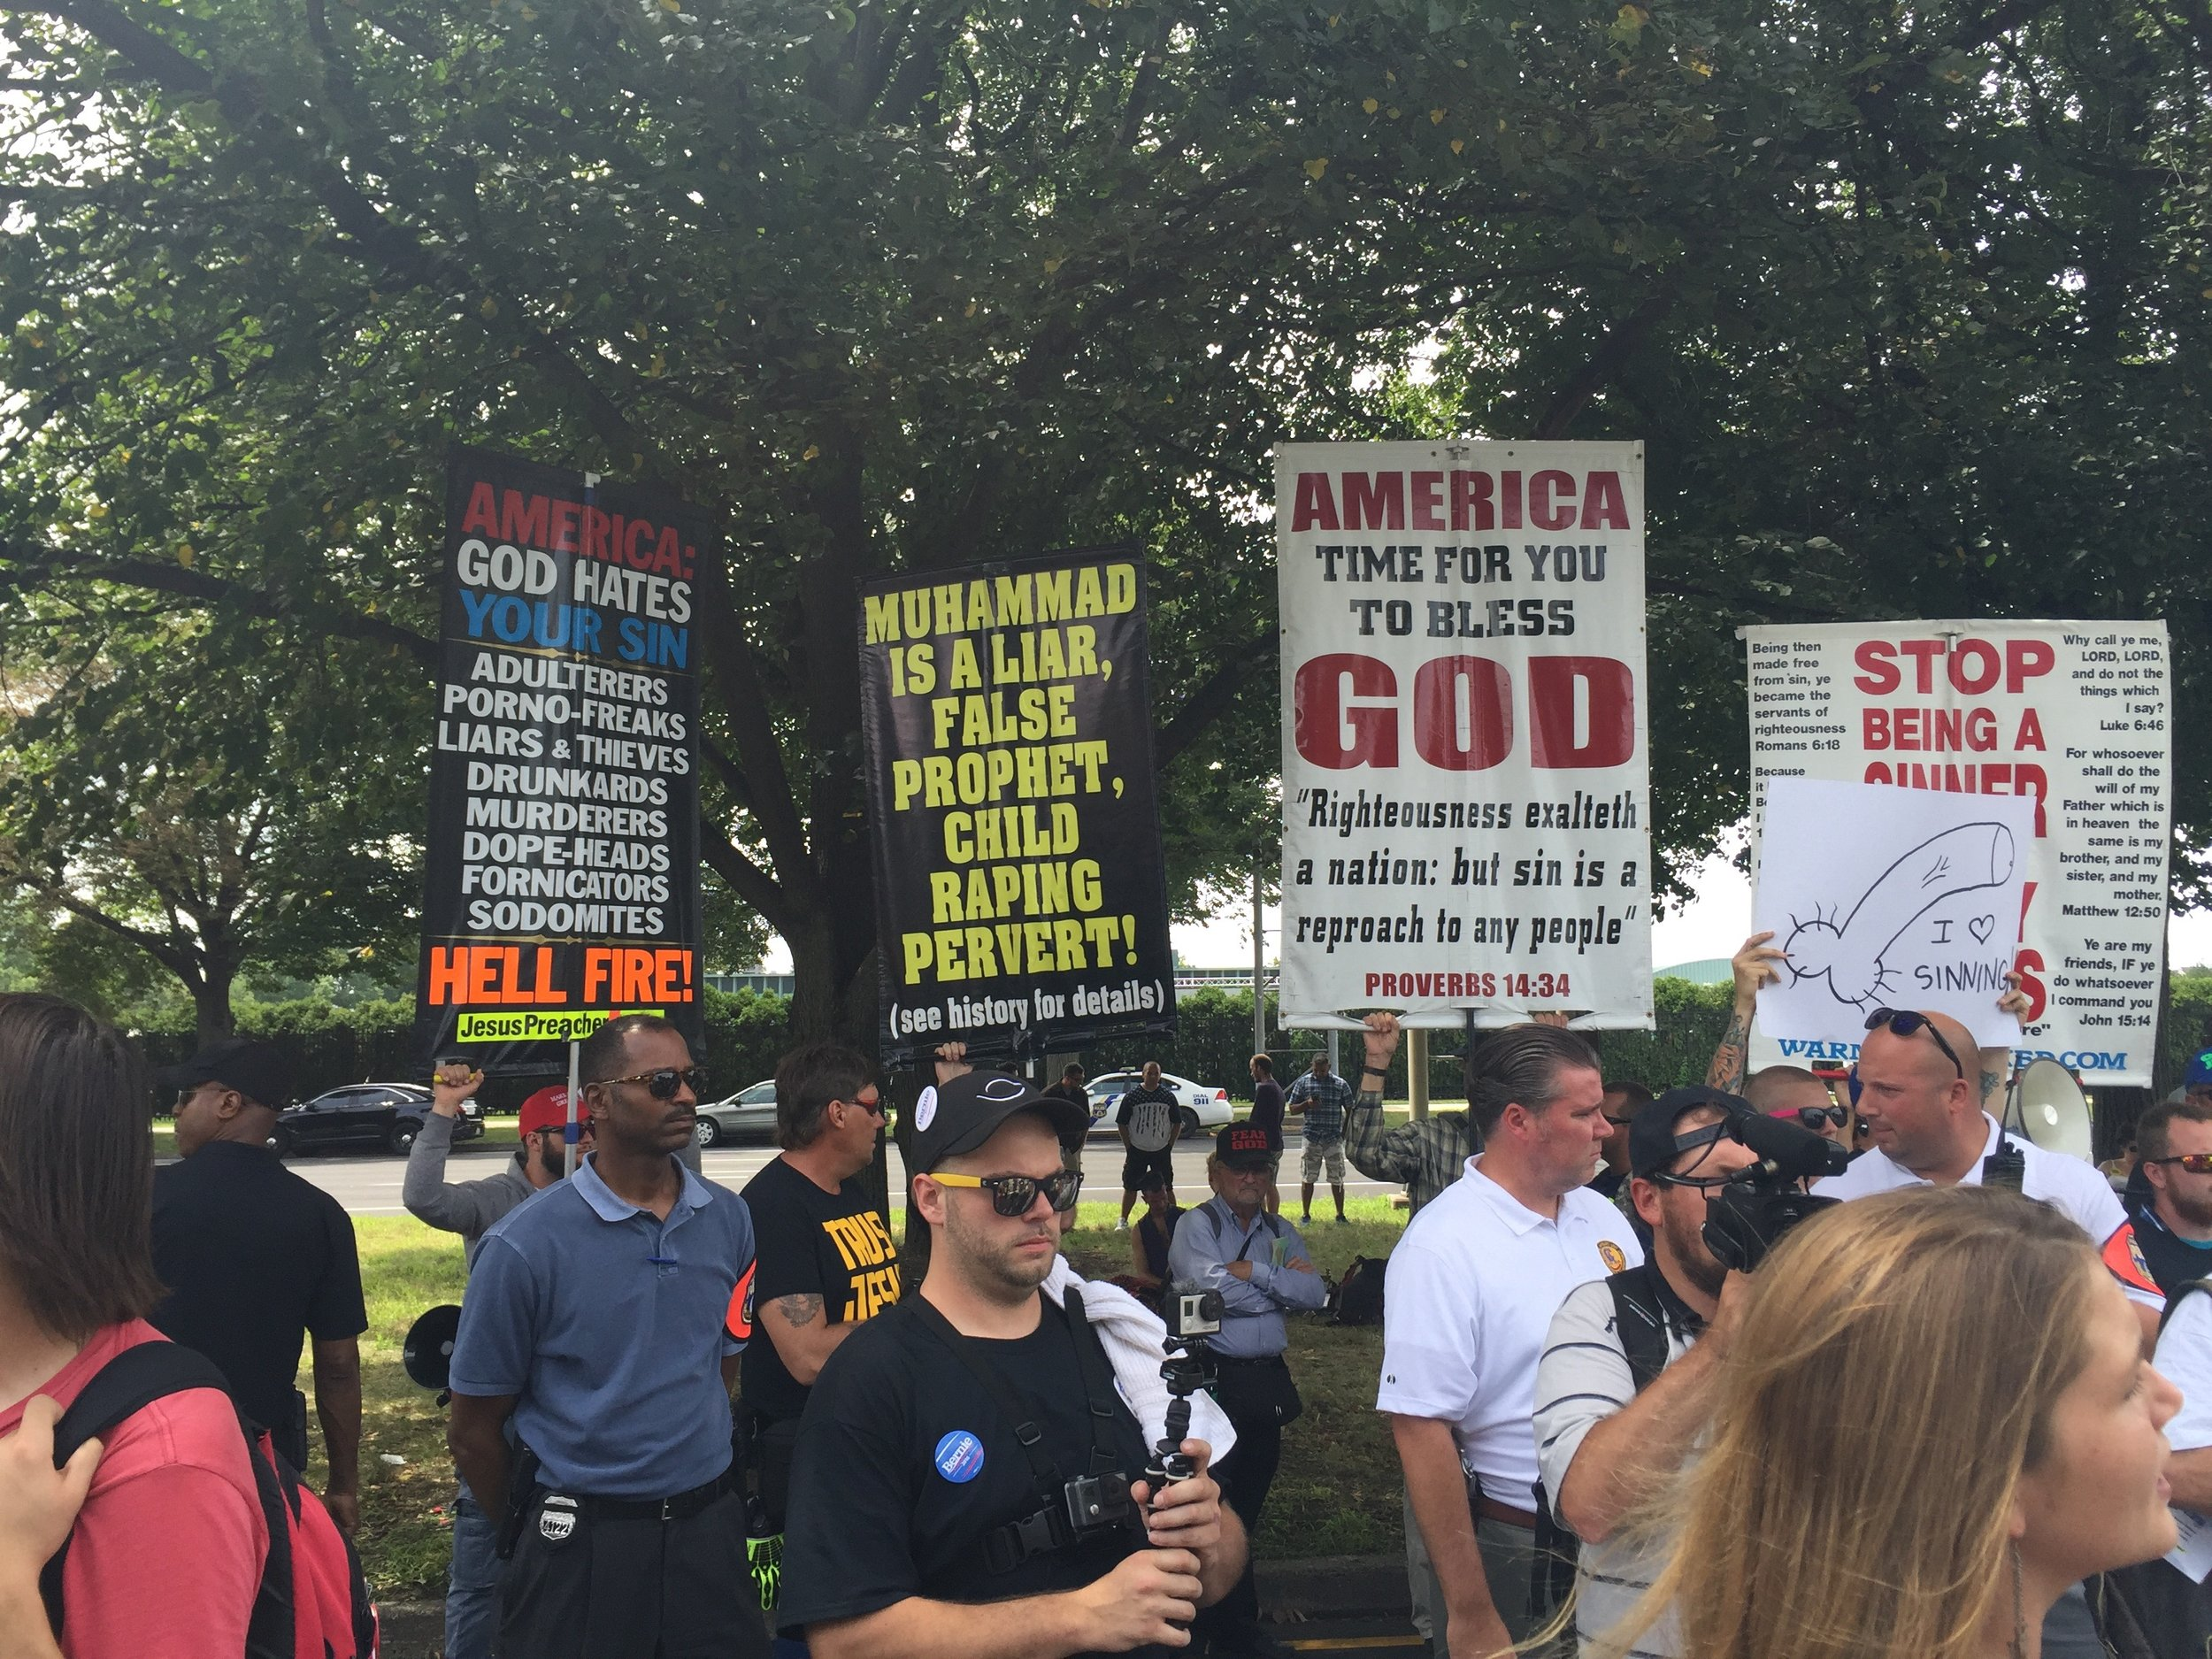 """Sinners, it's even hotter in hell than Philadelphia."" These guys lugged their signs, bullhorn and bellicose Christianity all the way from Cleveland."